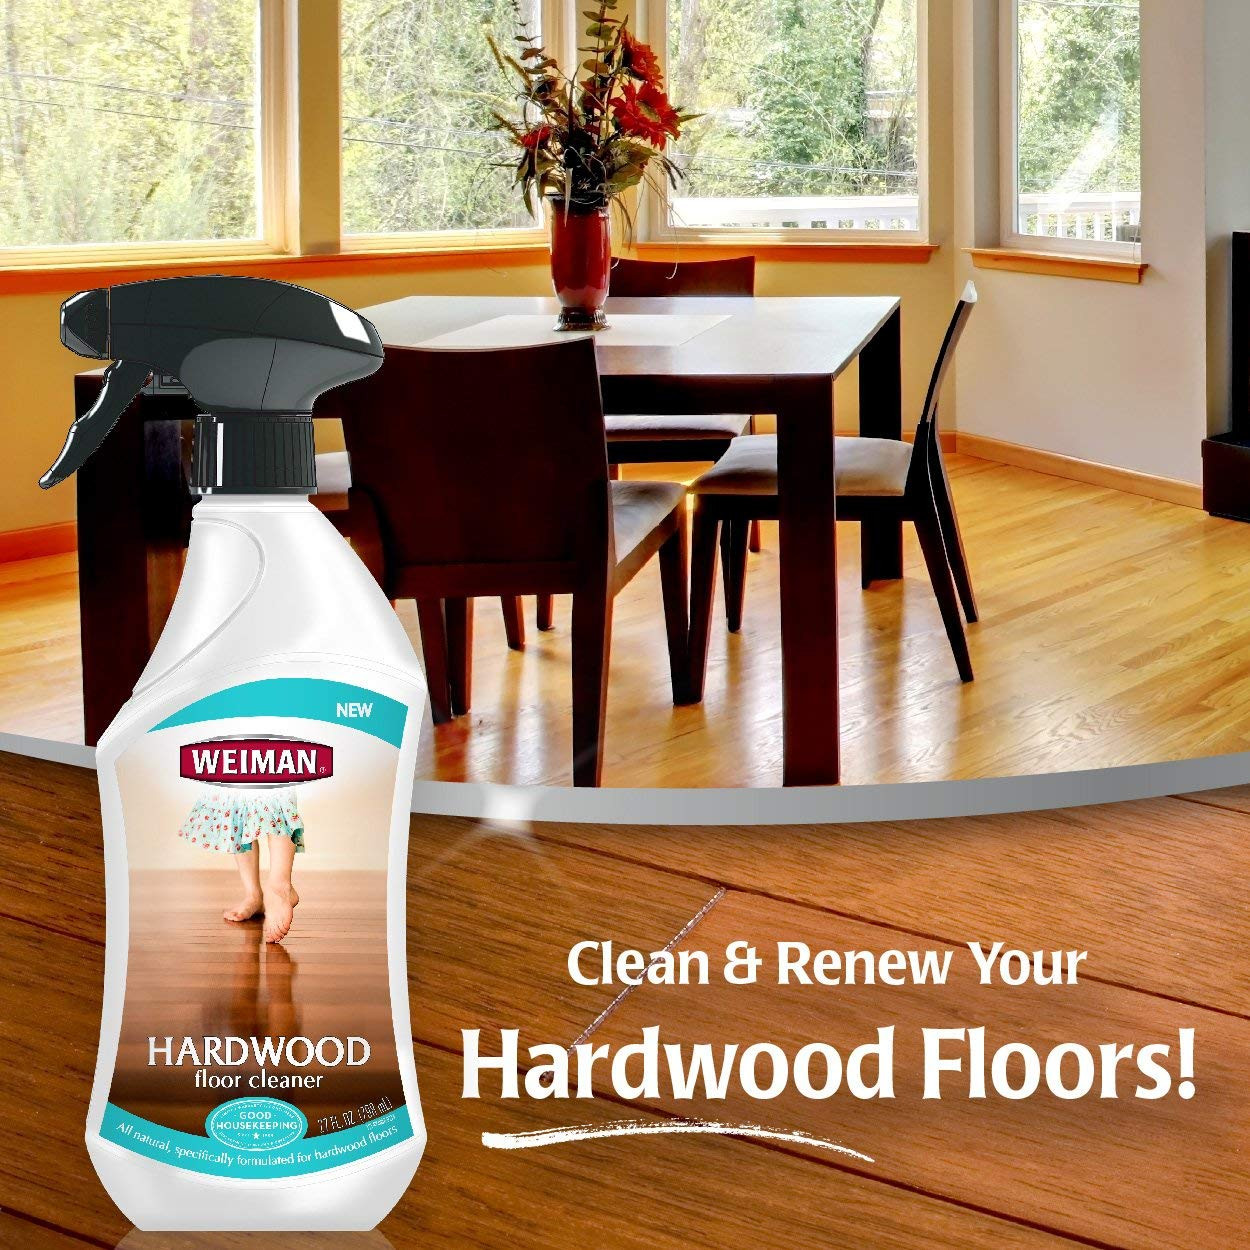 ryan homes hardwood floor options of amazon com weiman hardwood floor cleaner surface safe no harsh in amazon com weiman hardwood floor cleaner surface safe no harsh scent safe for use around kids and pets residue free 27 oz trigger home kitchen